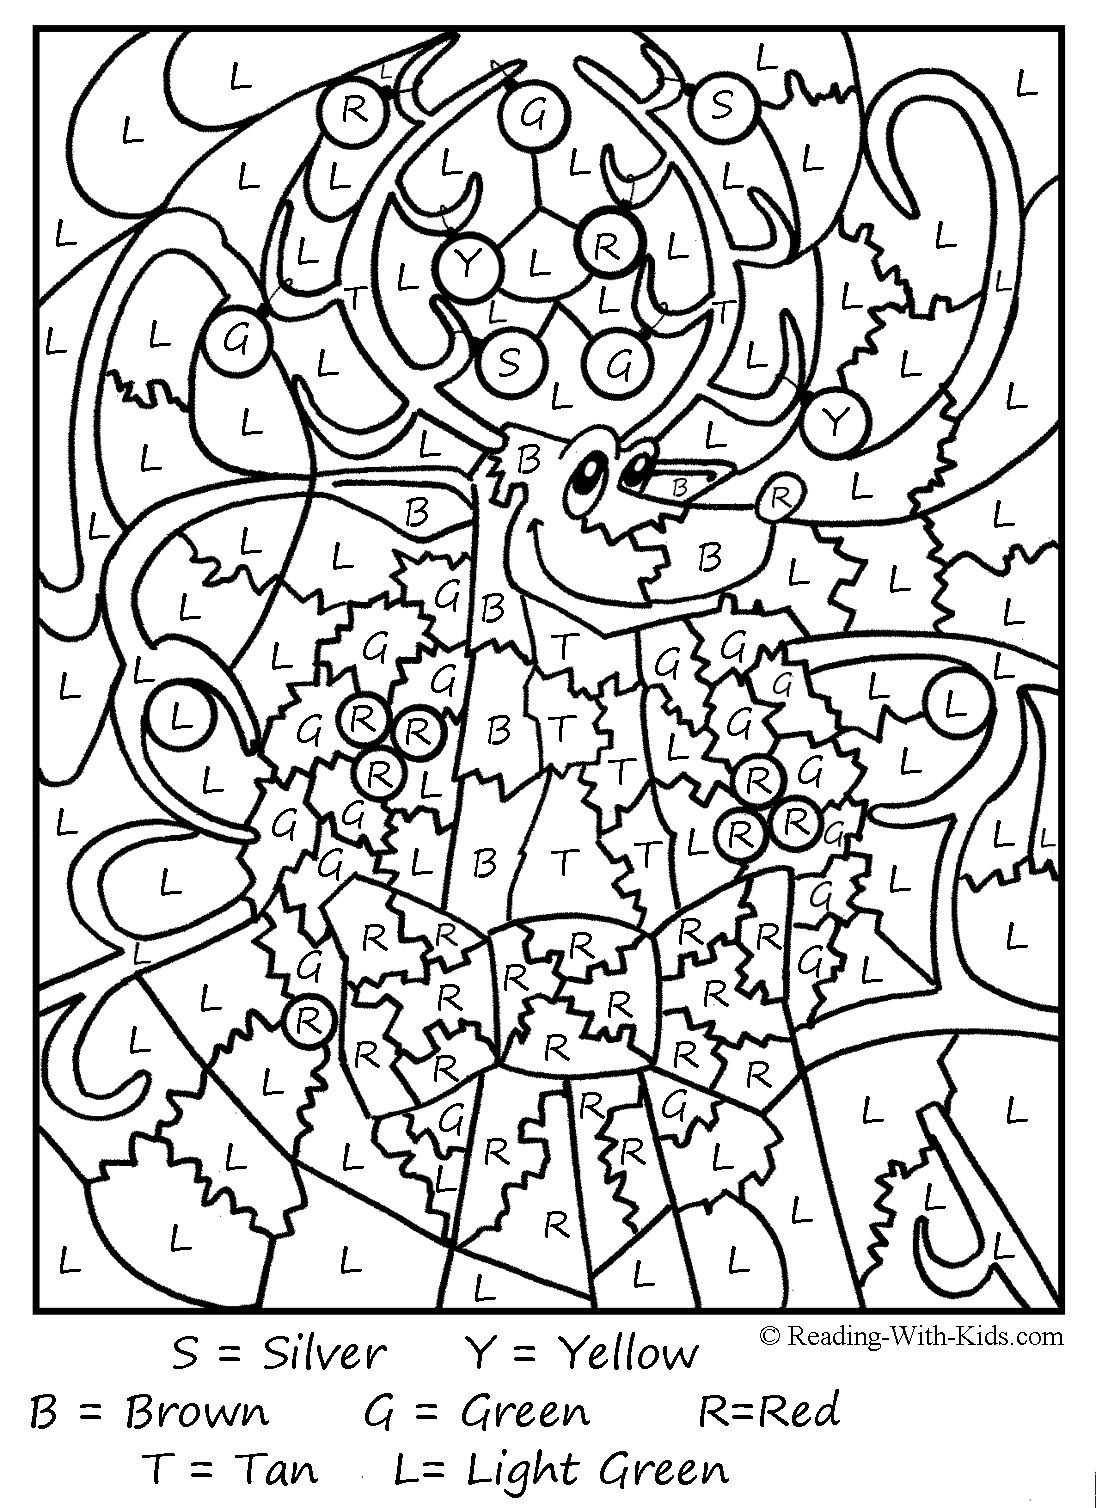 Christmas color by number coloring pages printable wallpaper